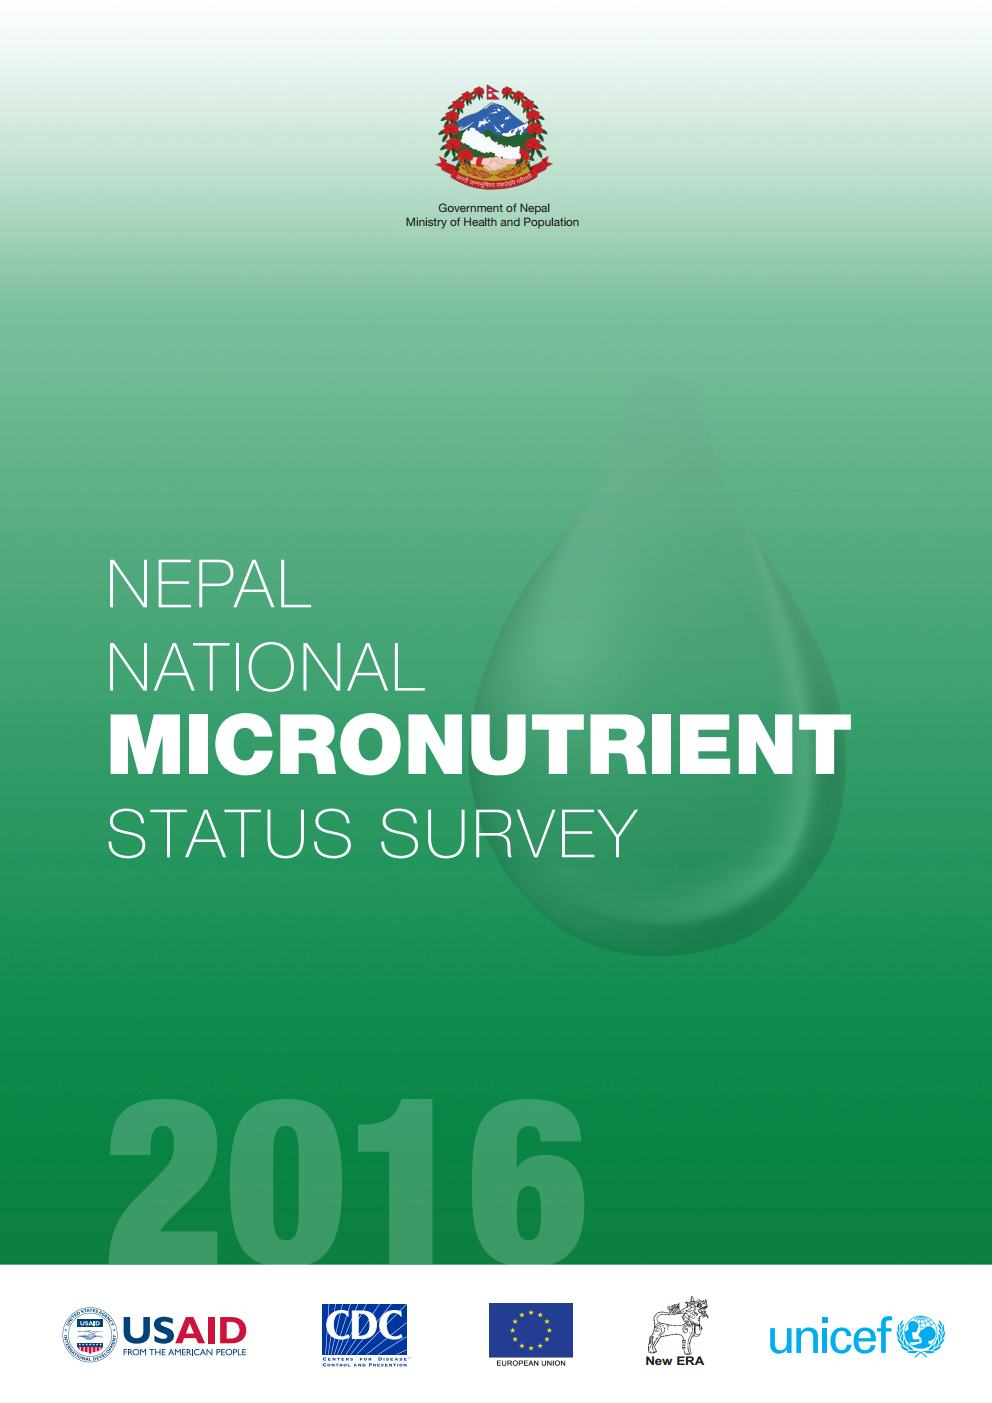 Nepal National Micronutrient Status Survey